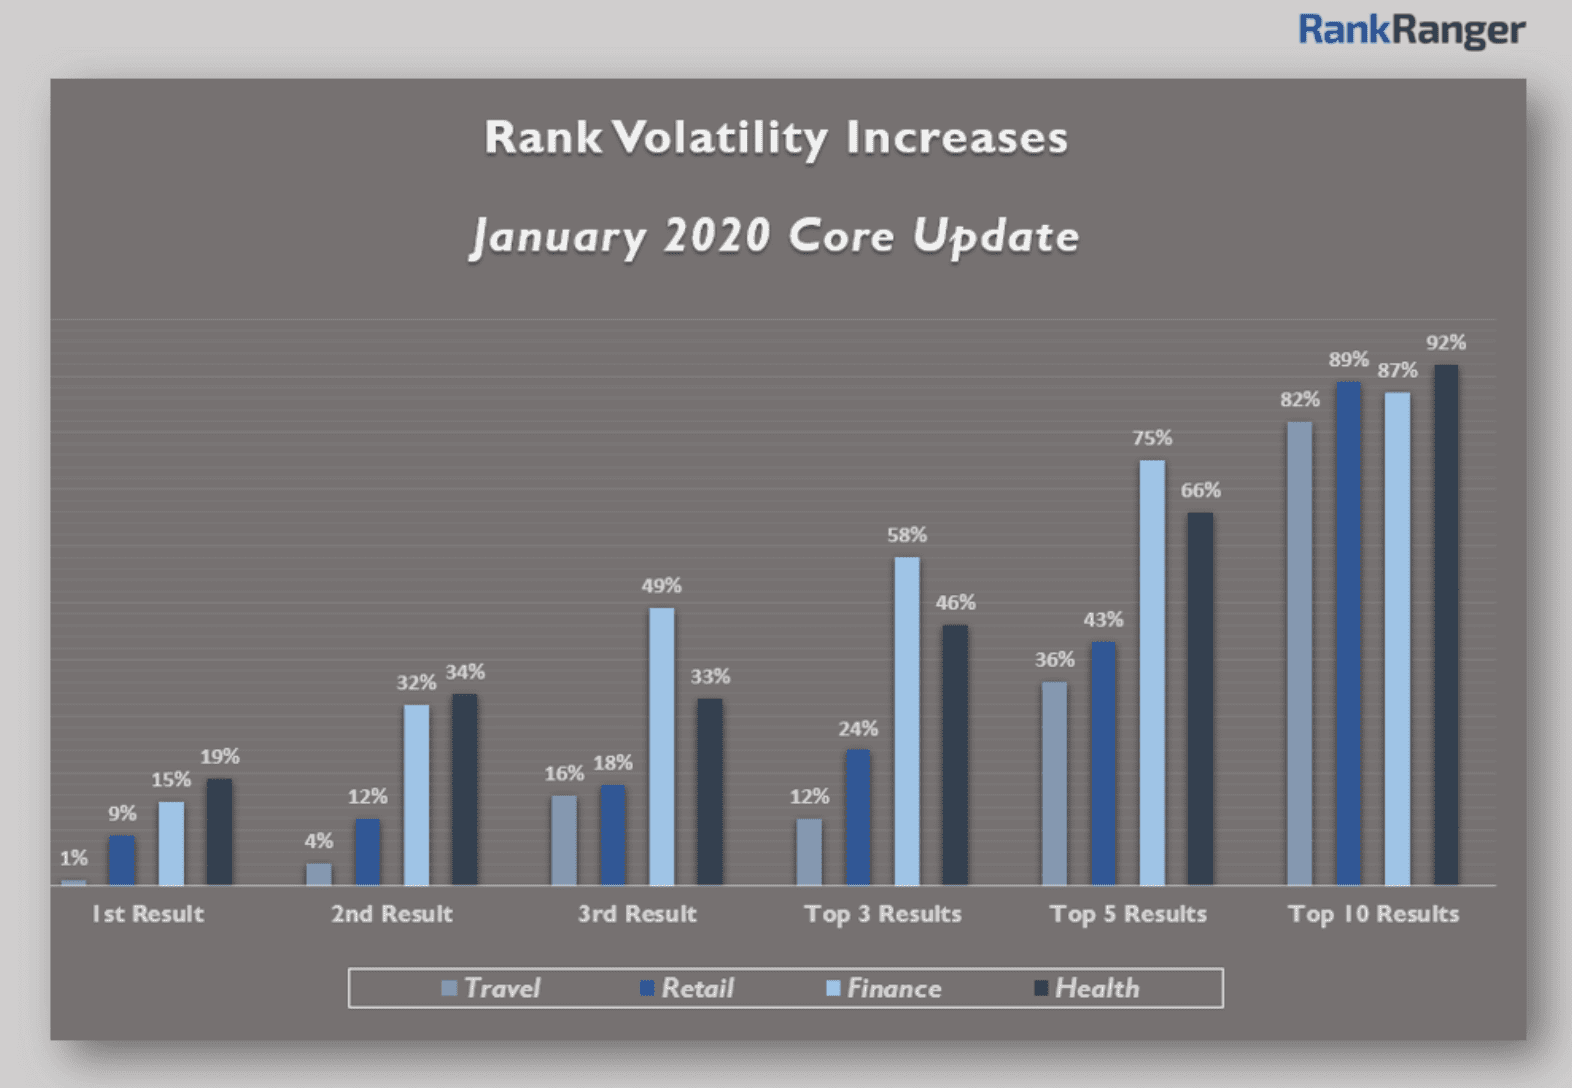 A graph of rank volatility increases when compared to the tiers of results as of January 2020